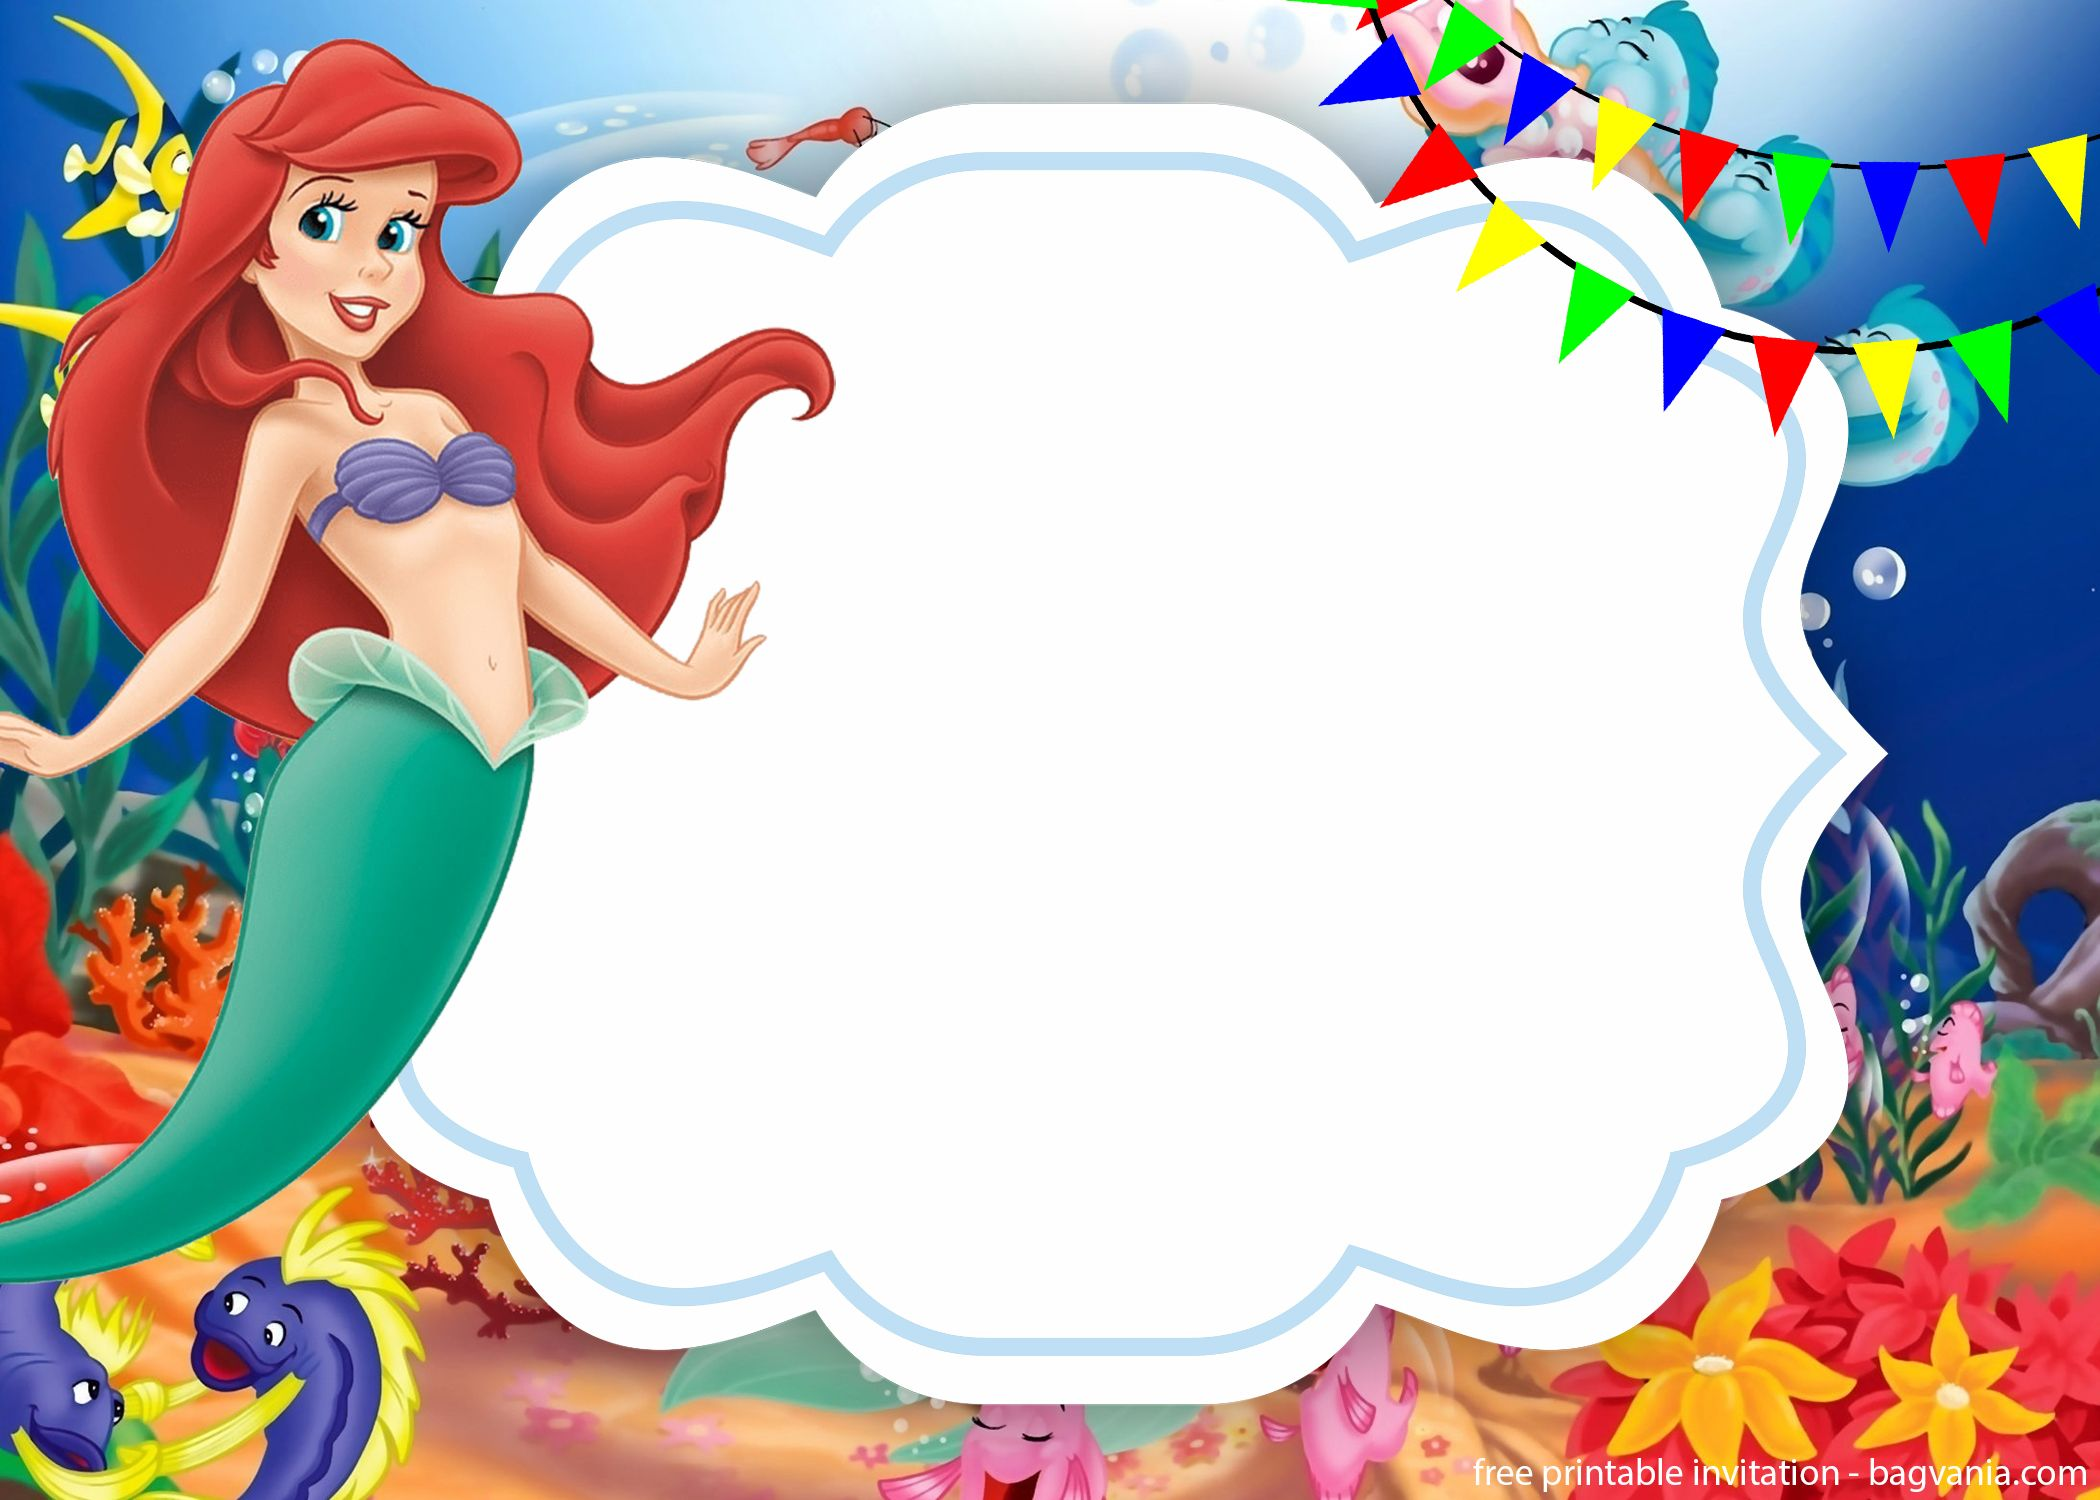 Ariel The Little Mermaid Invitation Template Will Be Suitable To Printed In A Glittery Or Glossy Paper If That So Jasmine Is Answer